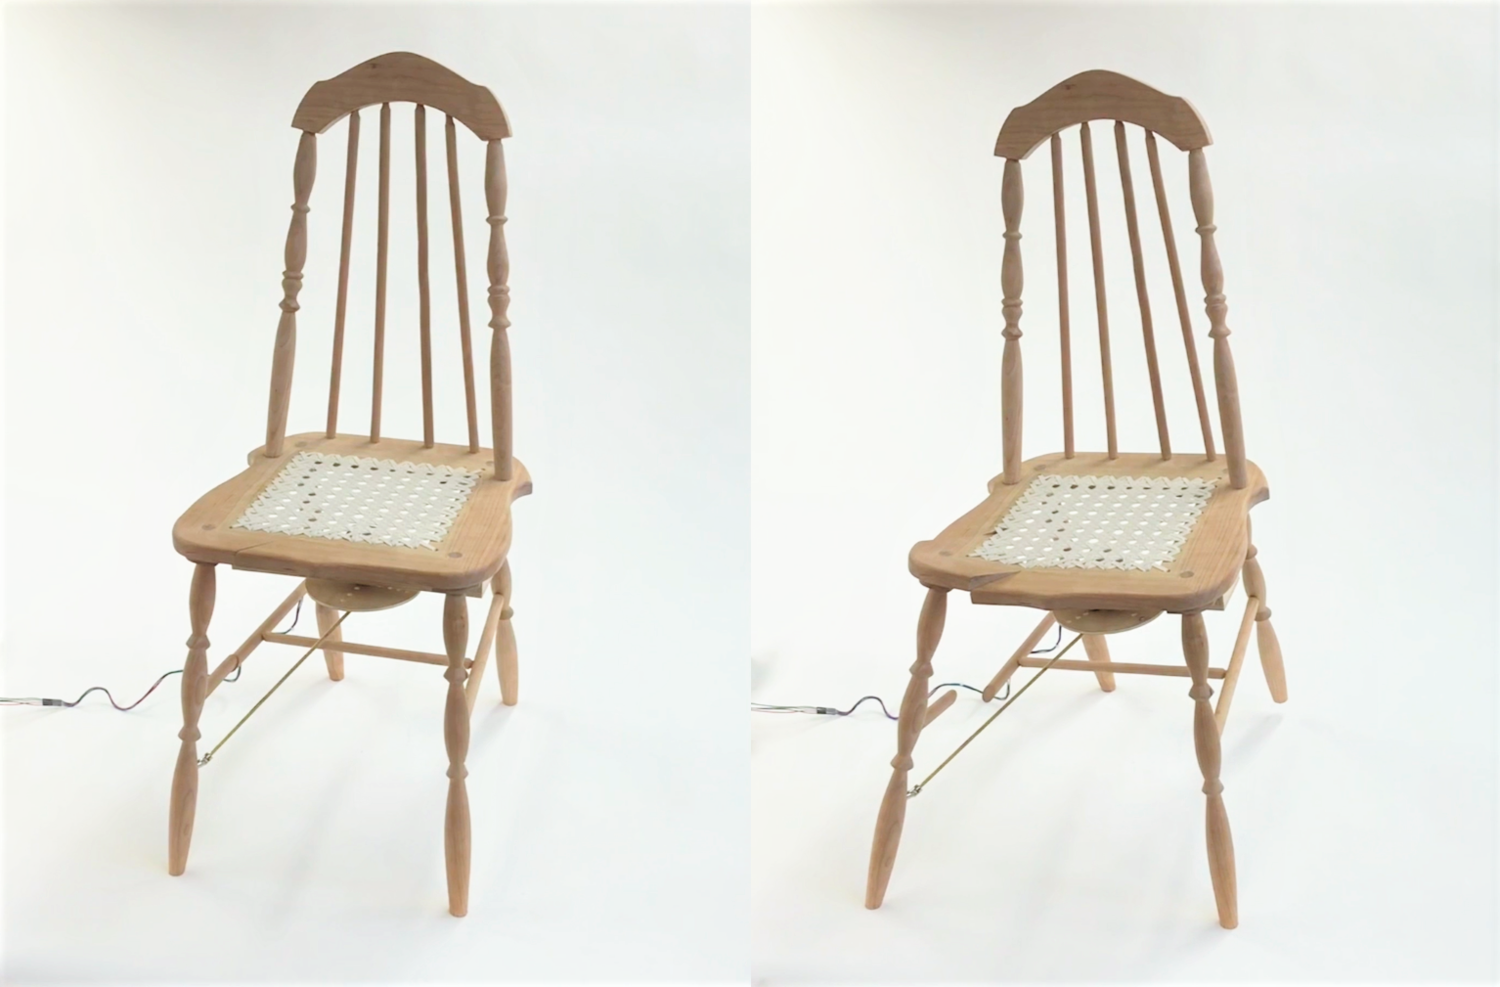 Video stills of Miss Manners, an animatronic wicker chair furniture sculpture by Stacy Lynne Motte.